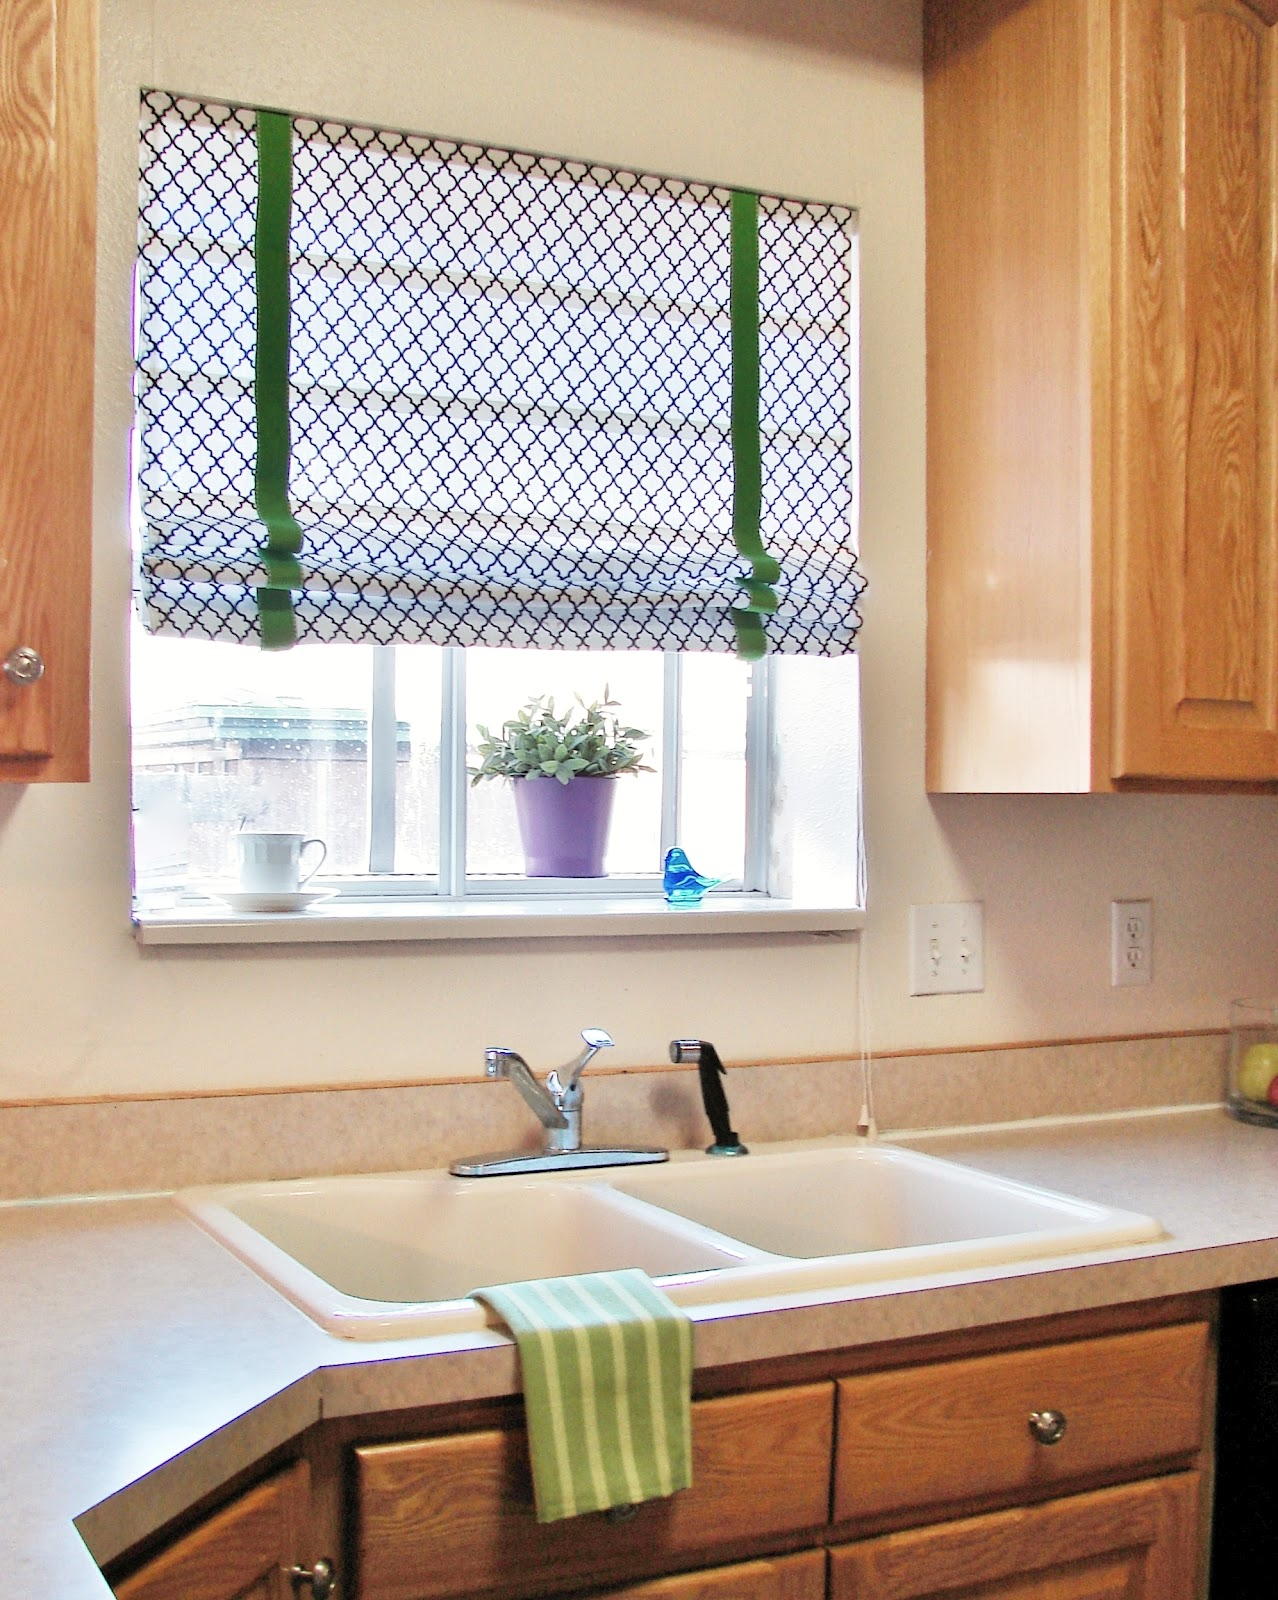 Hearth & Holm: No Sew Roman Shades Using Blinds